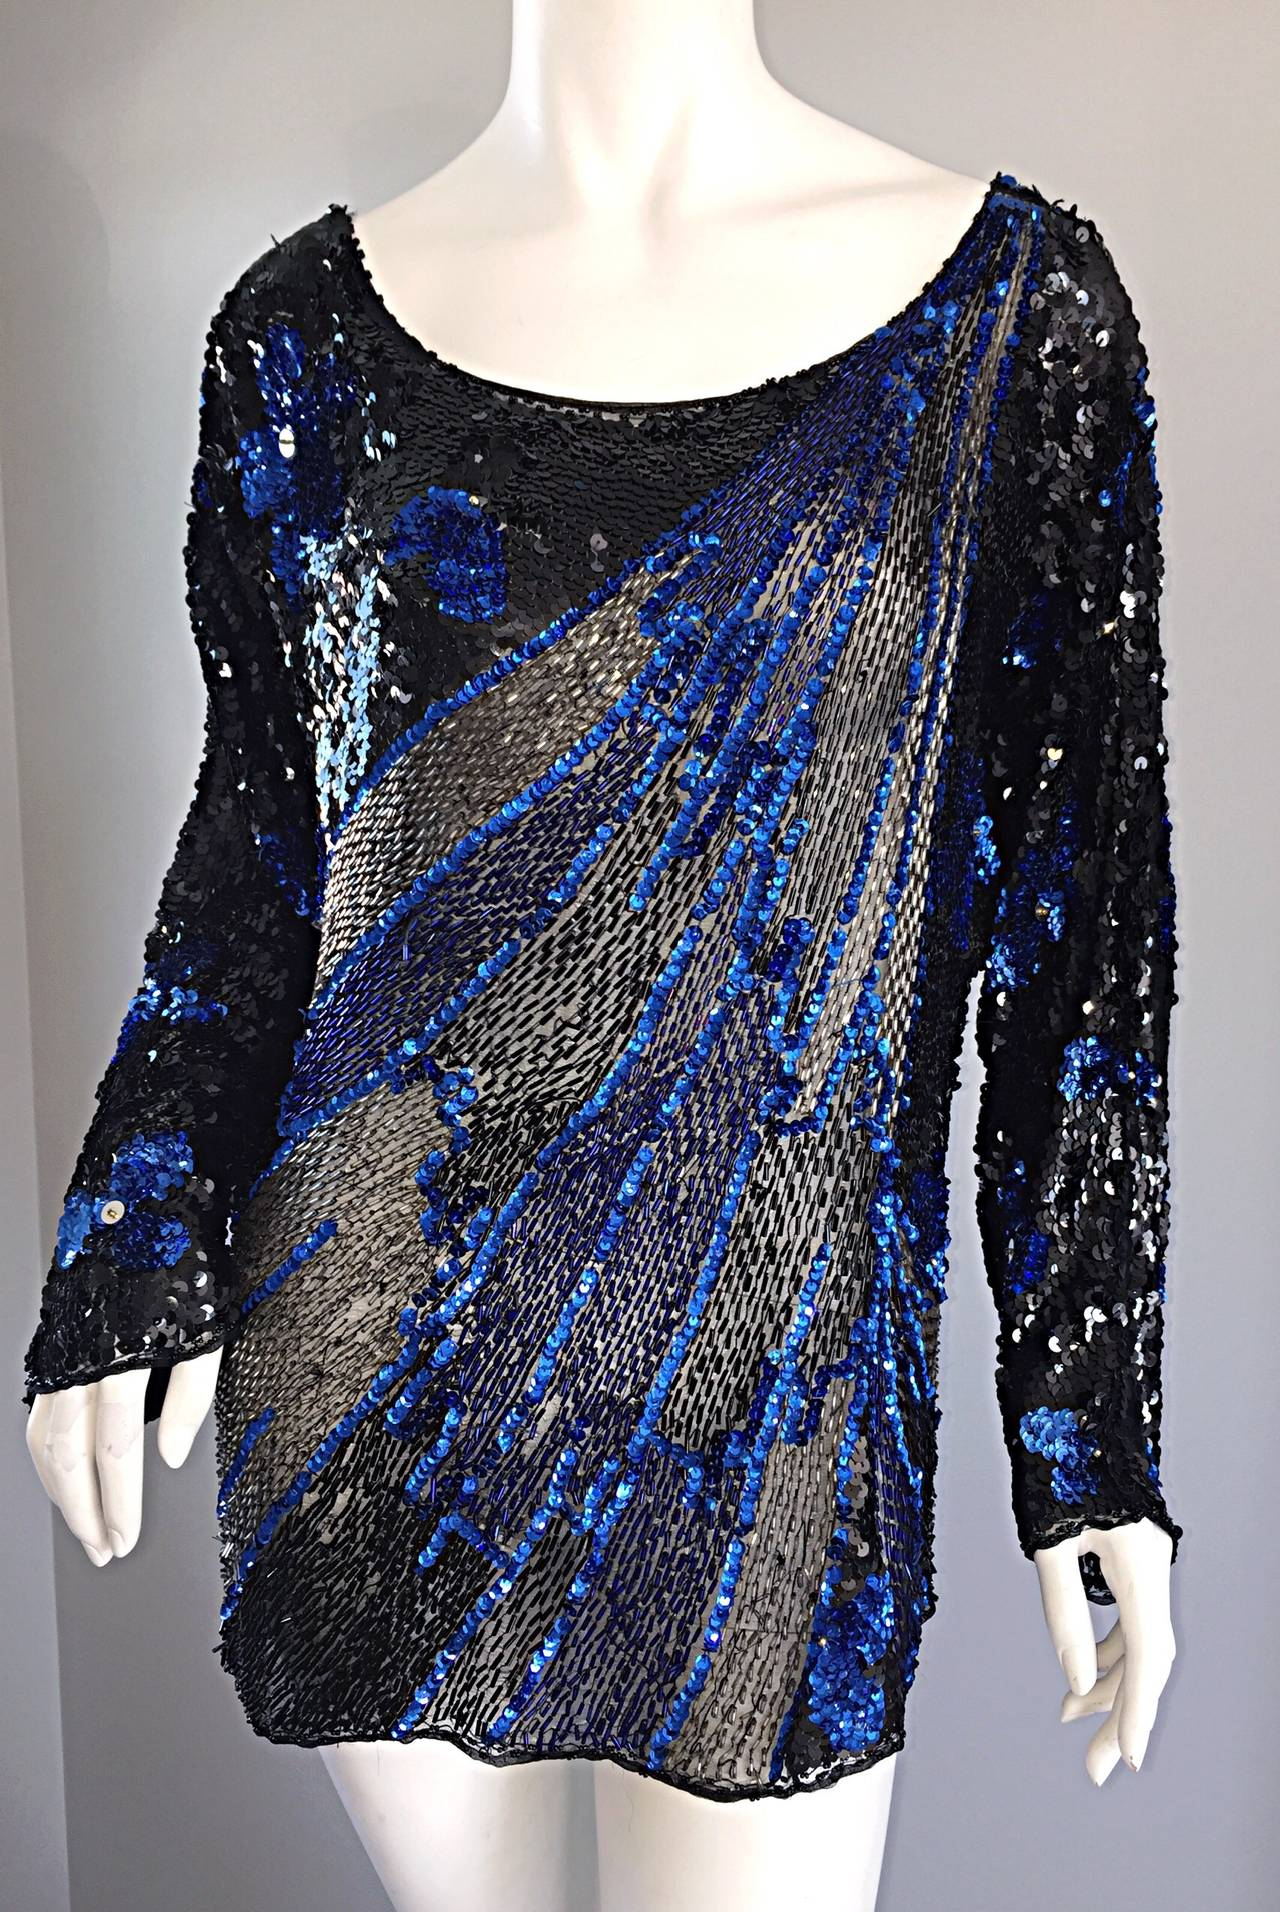 Black + Blue Sequined and Beaded Silk Fireworks & Flowers Top Attr. to Halston 8